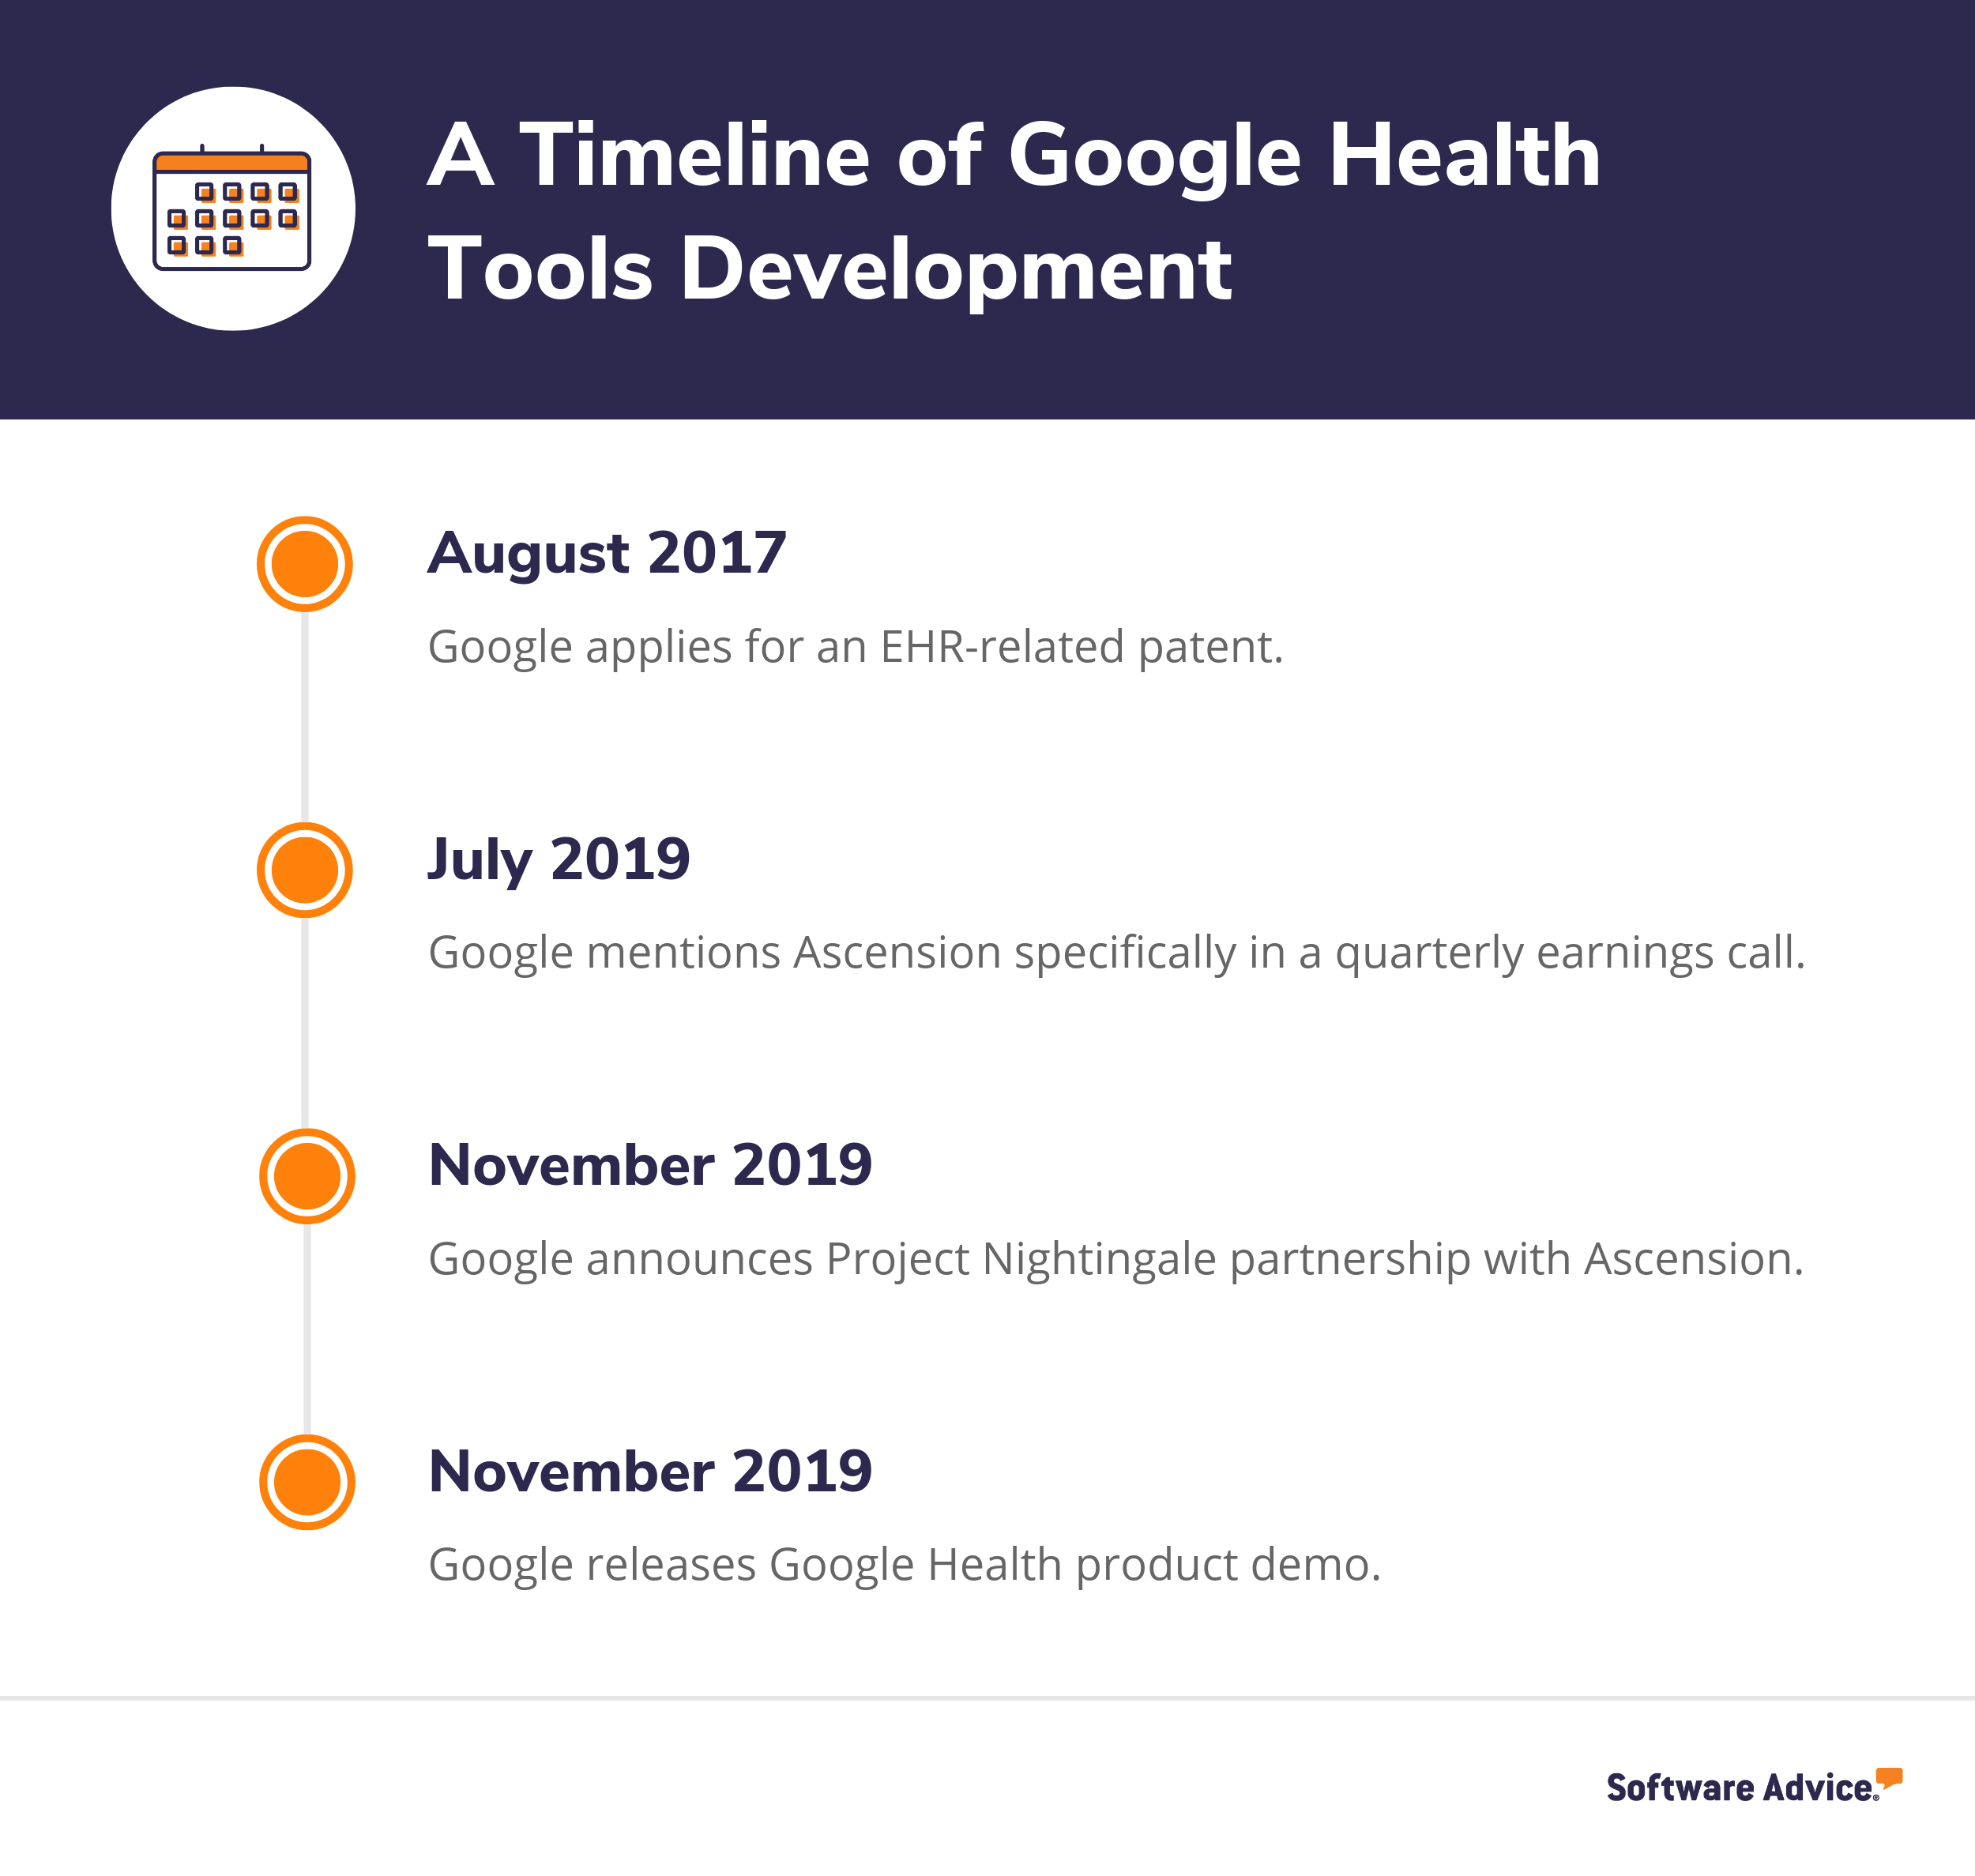 A timeline of the development of Google Health tools